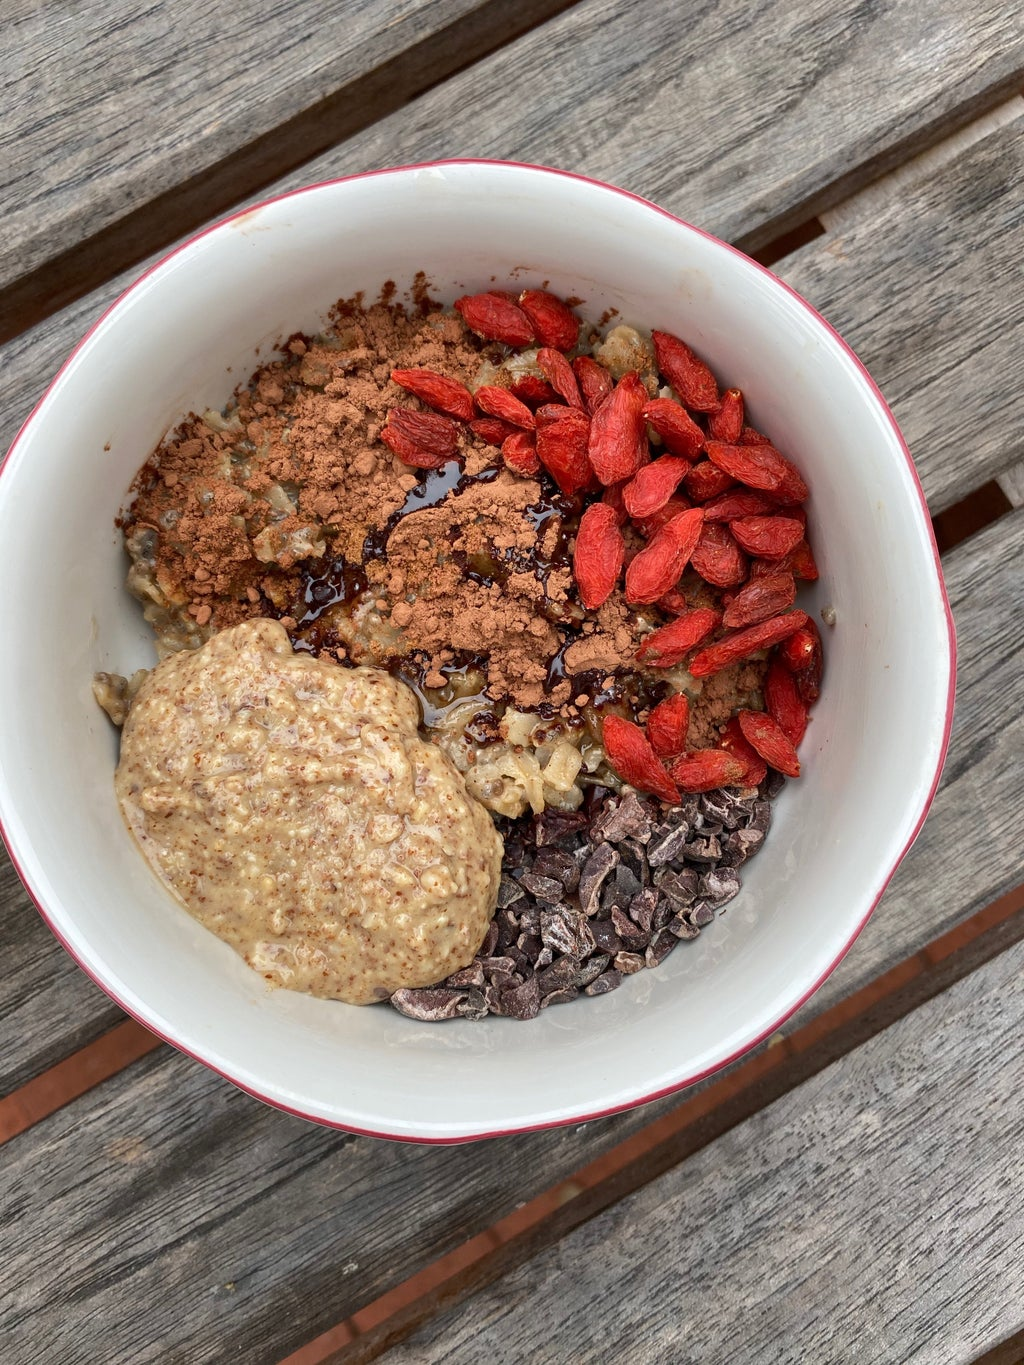 Dorm oatmeal with nut butter, cinnamon, chocolate pieces, and dried fruit